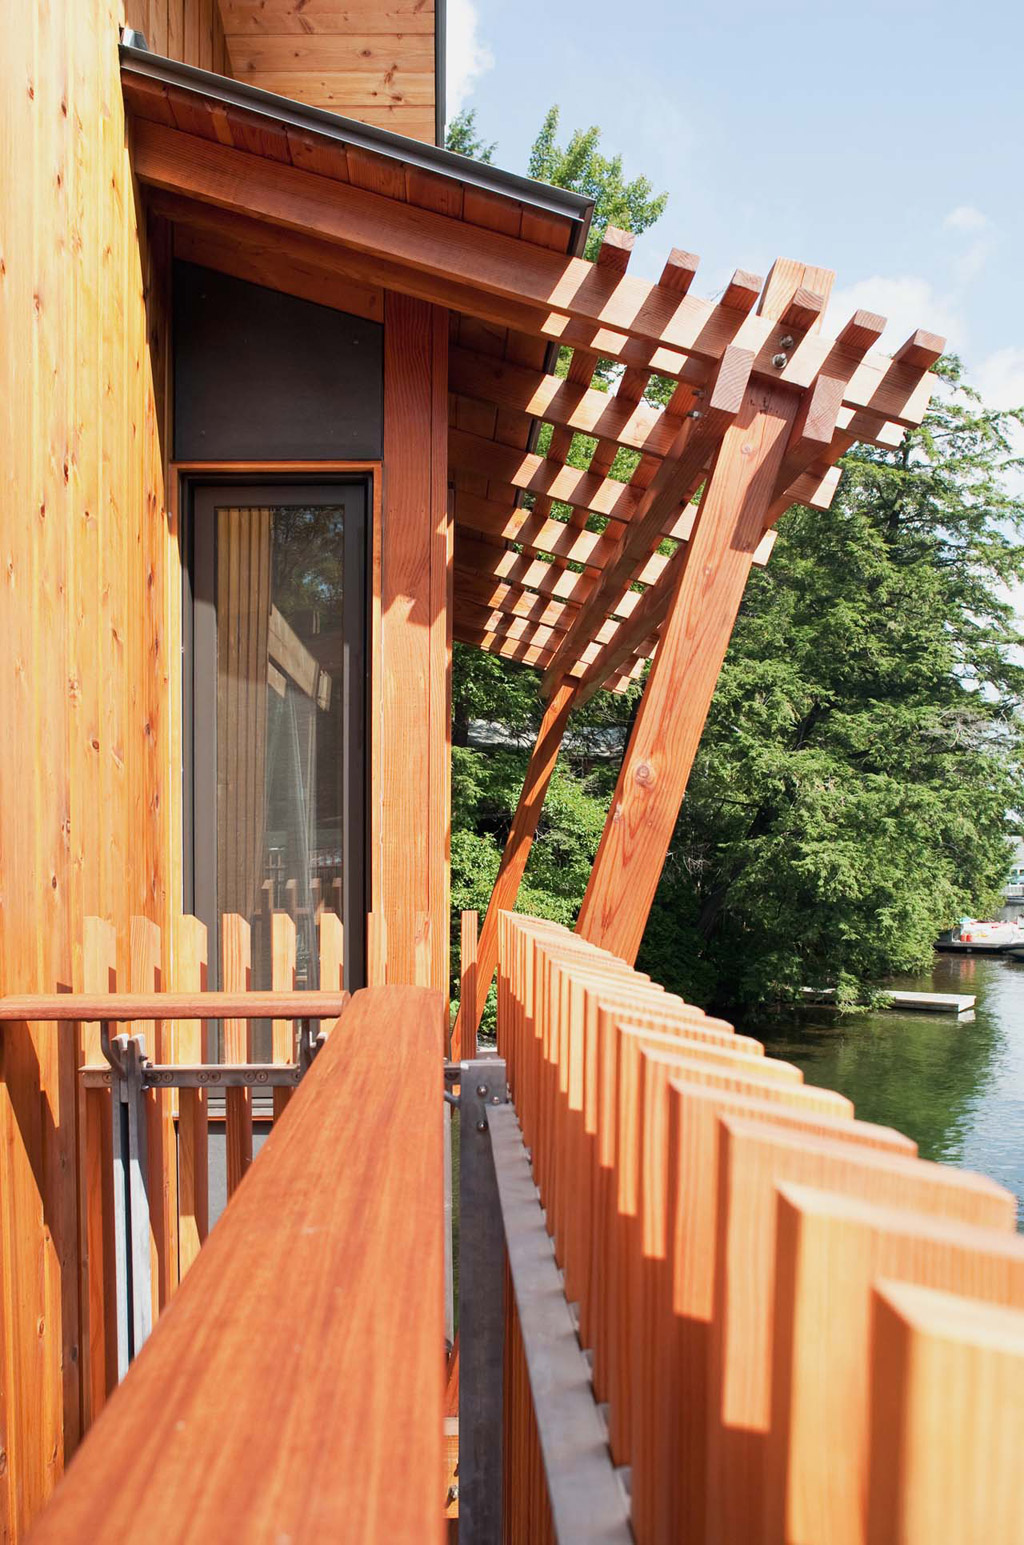 muskoka-boathouse-christopher-simmonds-architecture-3